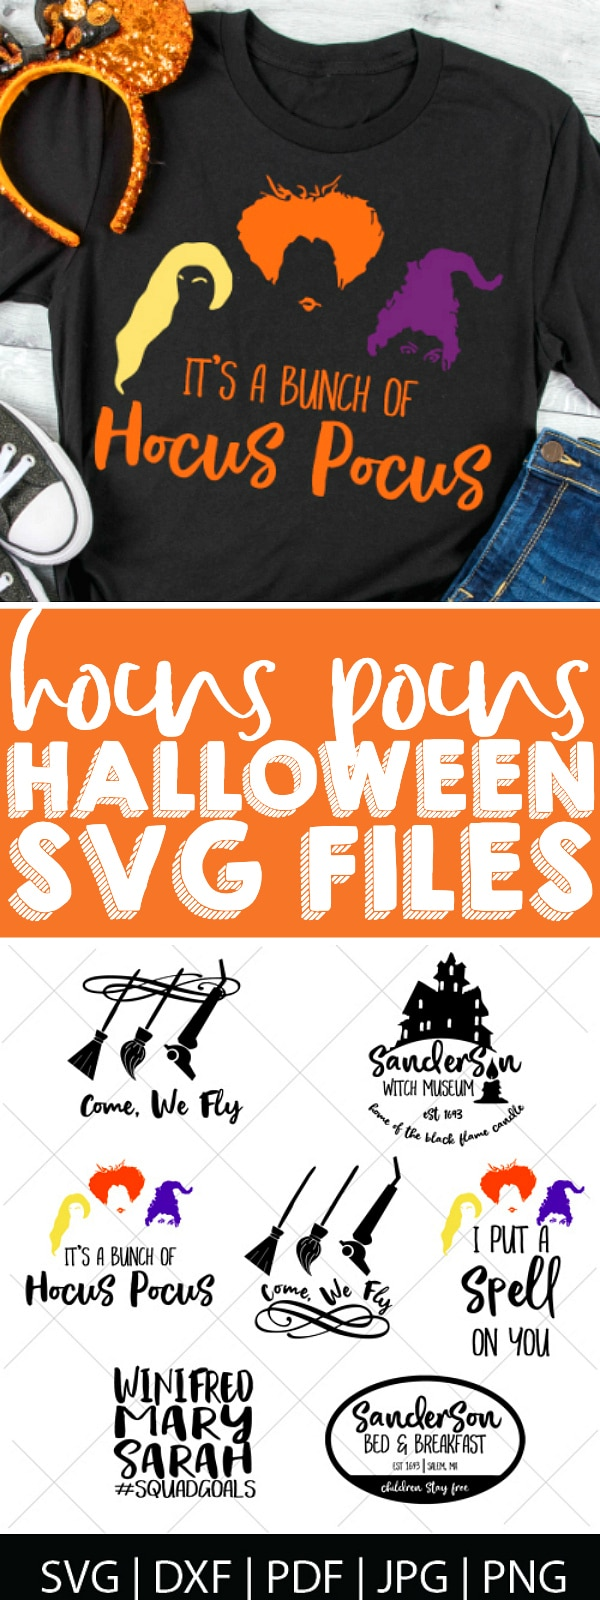 It's all a bunch of HOCUS POCUS! Celebrate Halloween and our favorite witch sisters with this Hocus Pocus SVG Bundle! These digital files are perfect for making Disney Halloween shirts, especially for Mickey's Not So Scary Halloween party, as well as Halloween decor and invites! | The Love Nerds #Disneycricut #diyHalloween